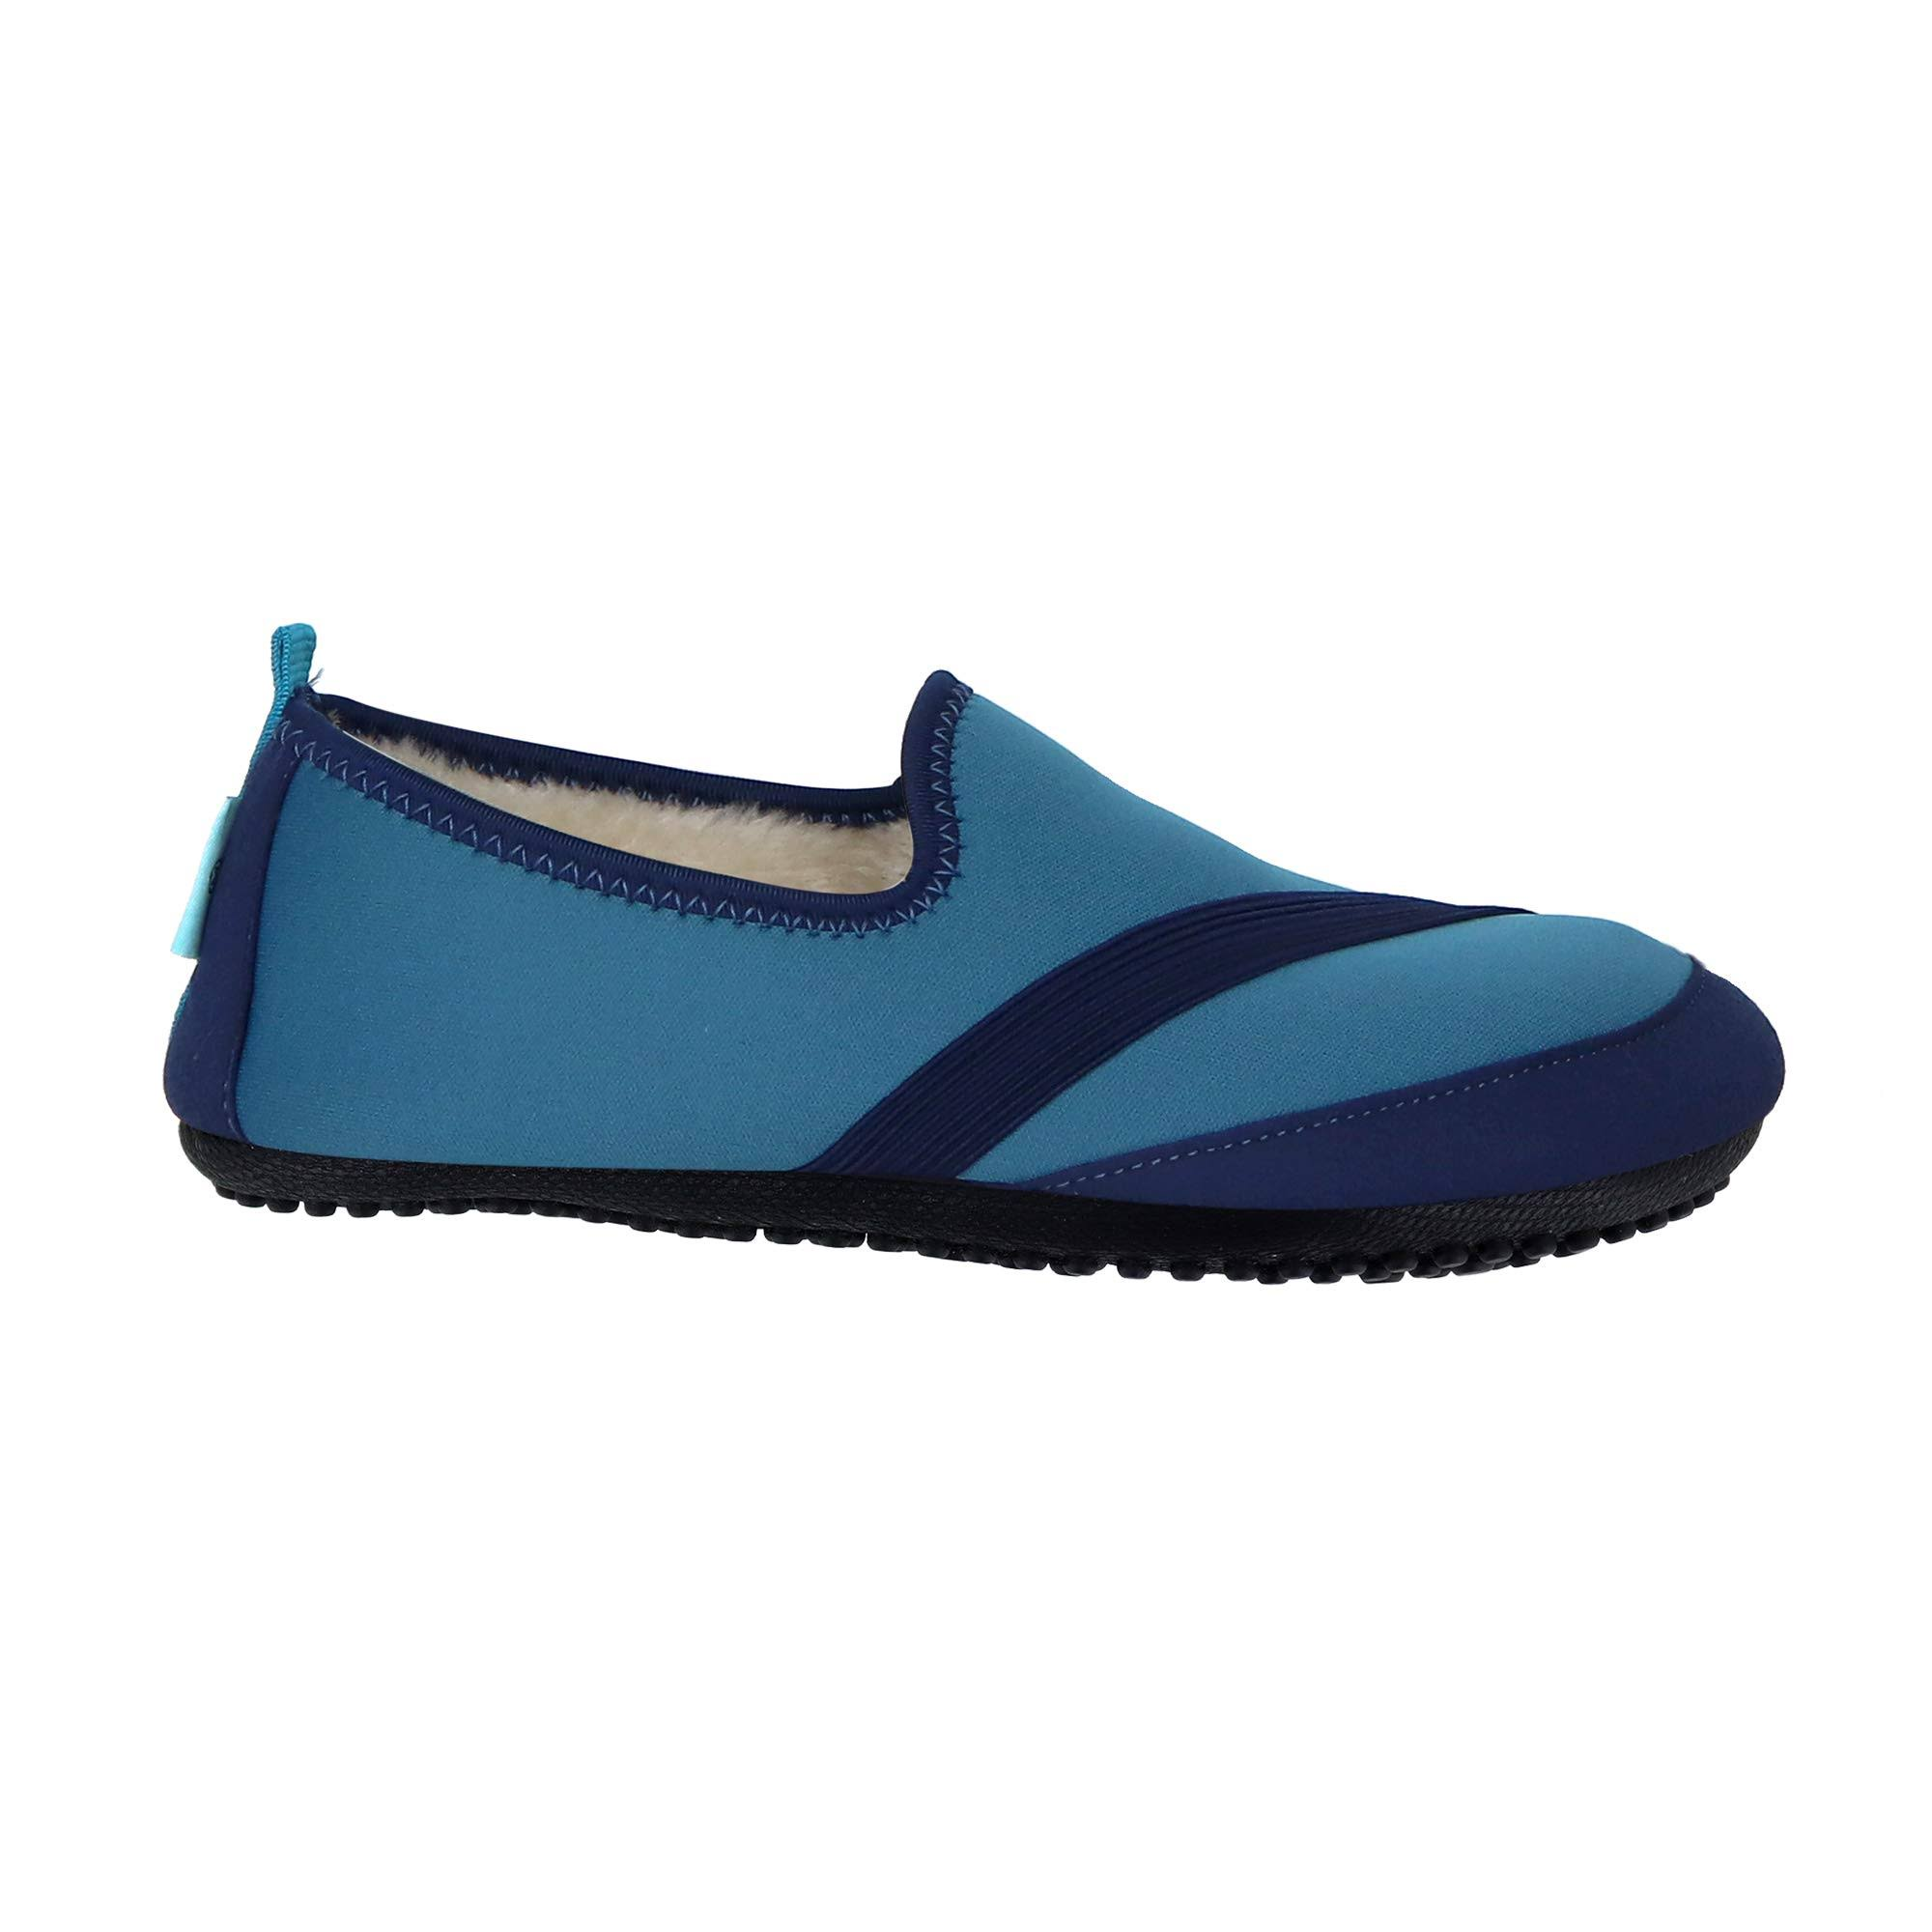 Fitkicks Kozikicks Blue Slippers Large